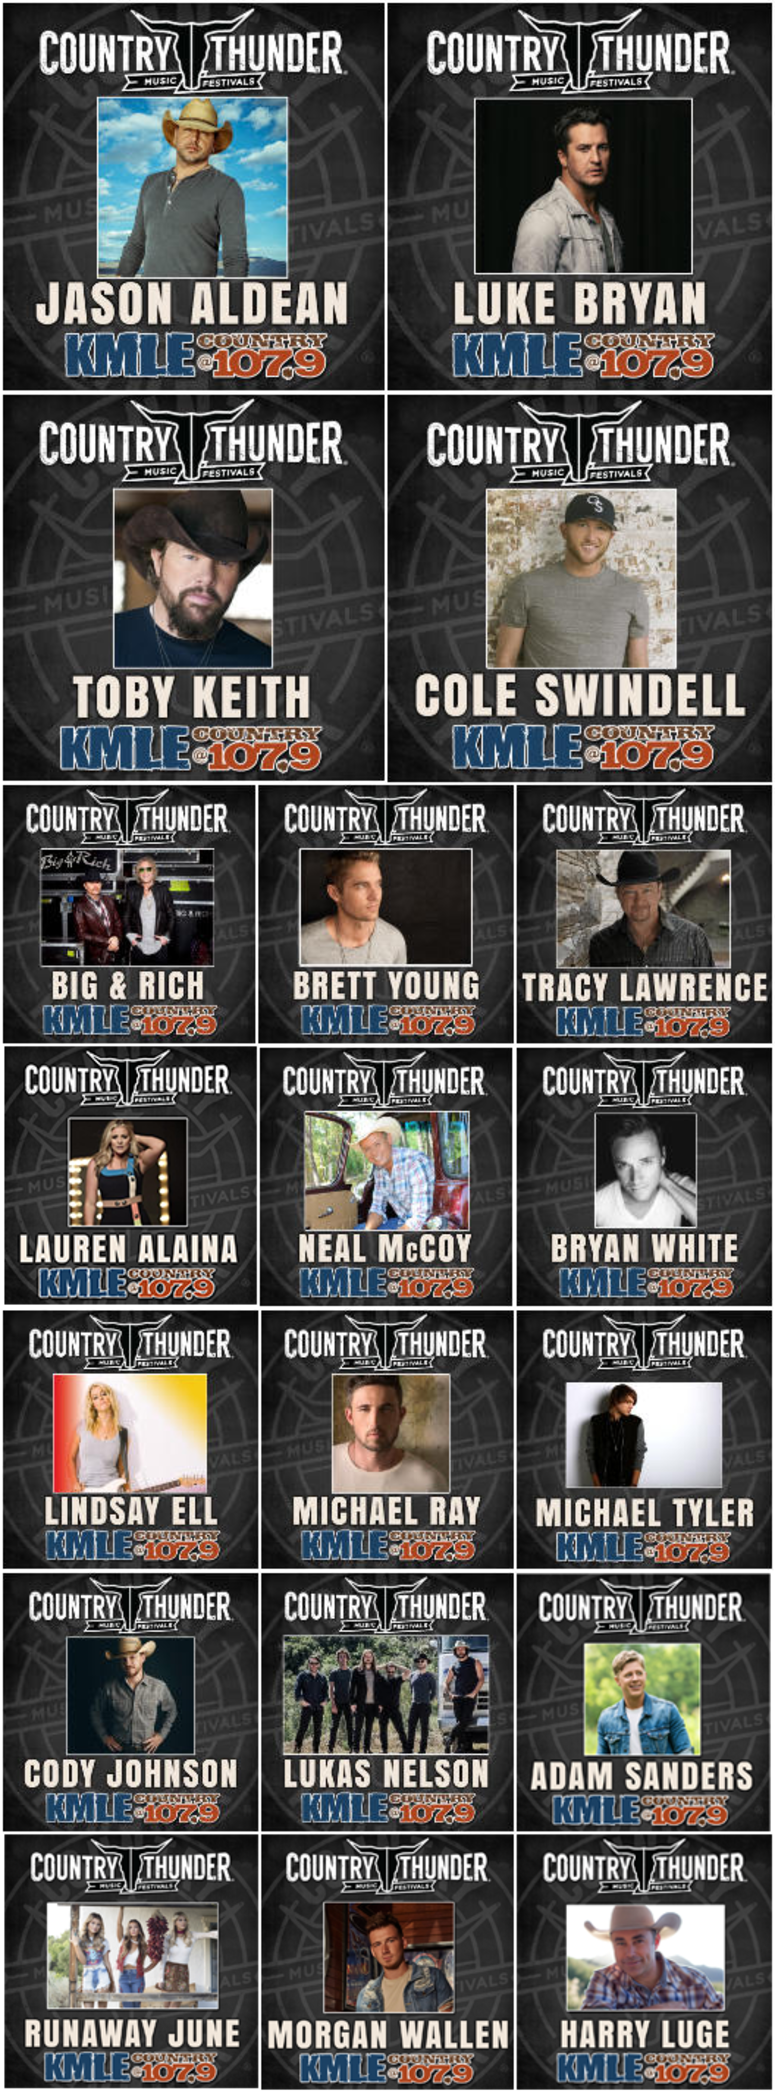 Country Thunder Line Up